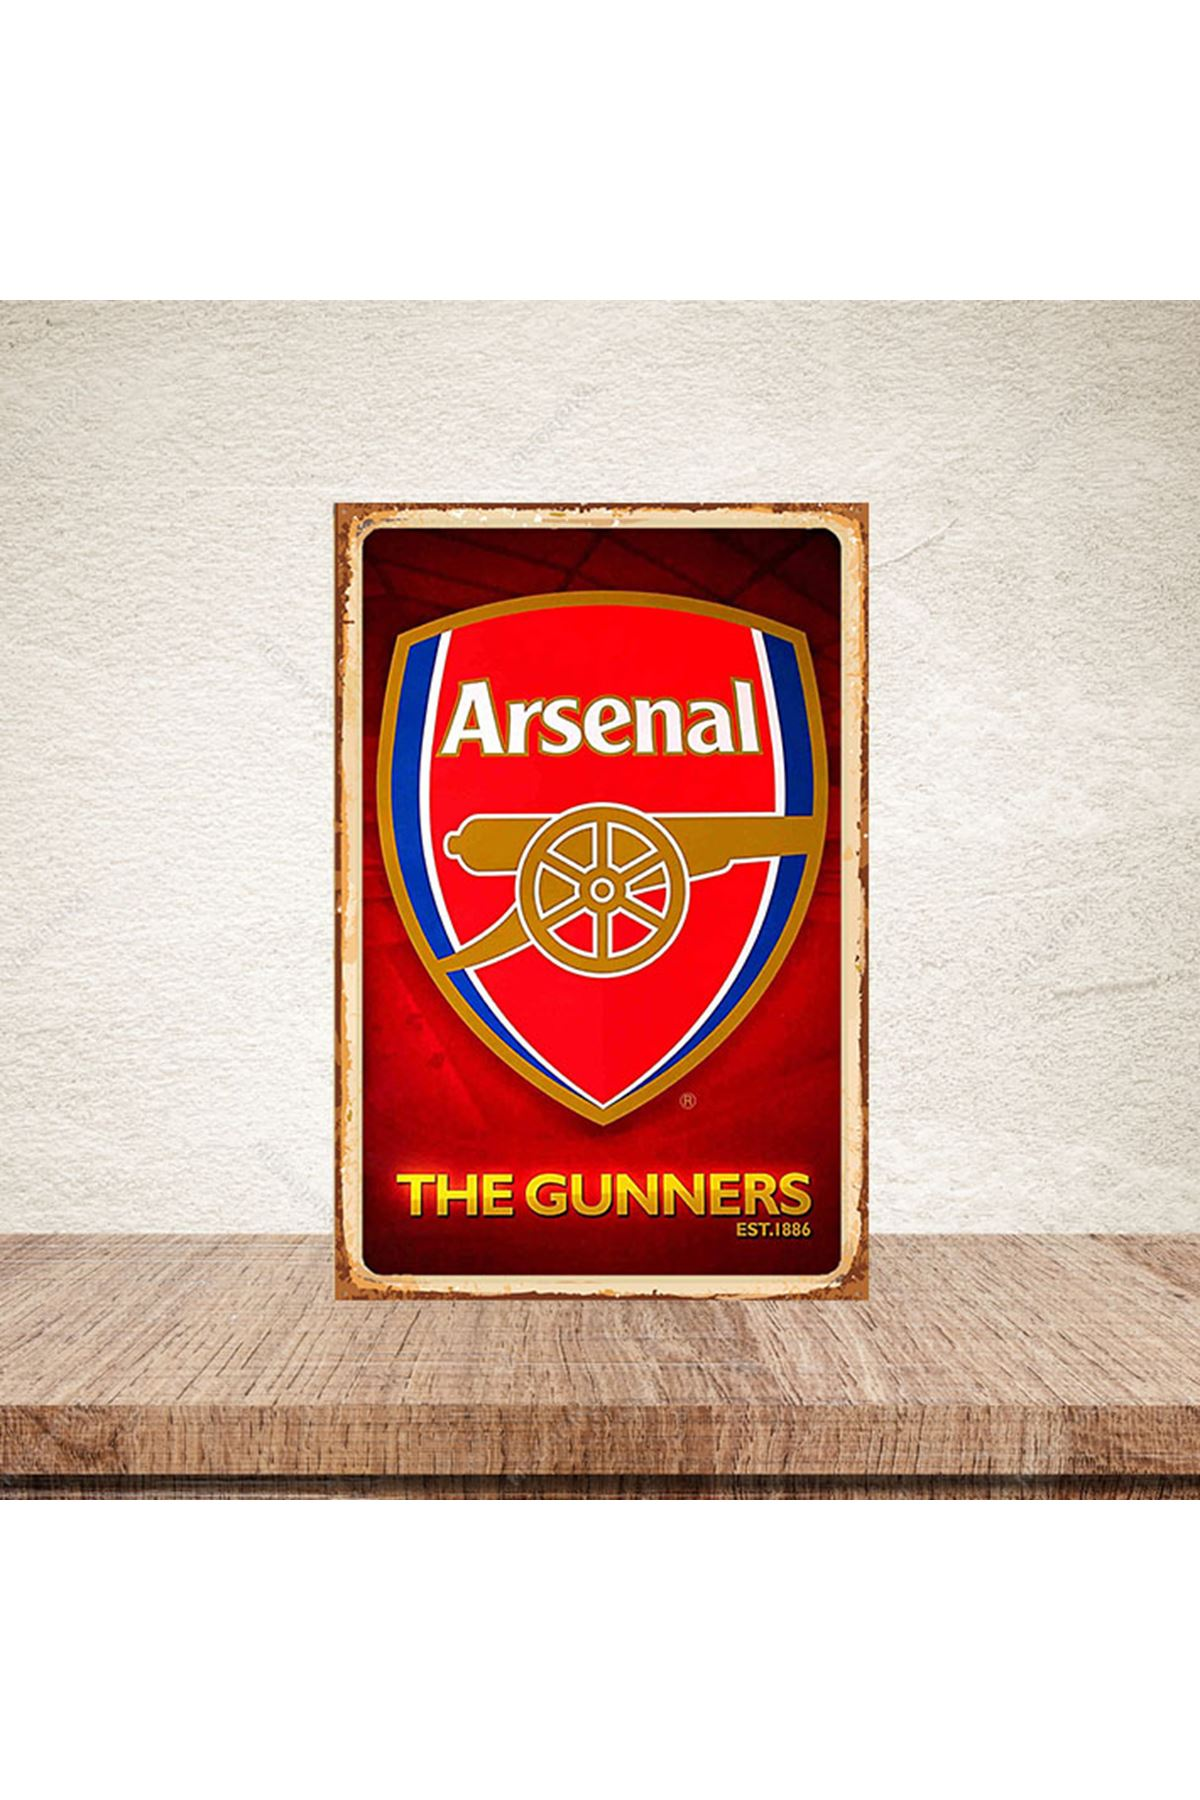 ARSENAL THE GUNNERS - AHŞAP POSTER